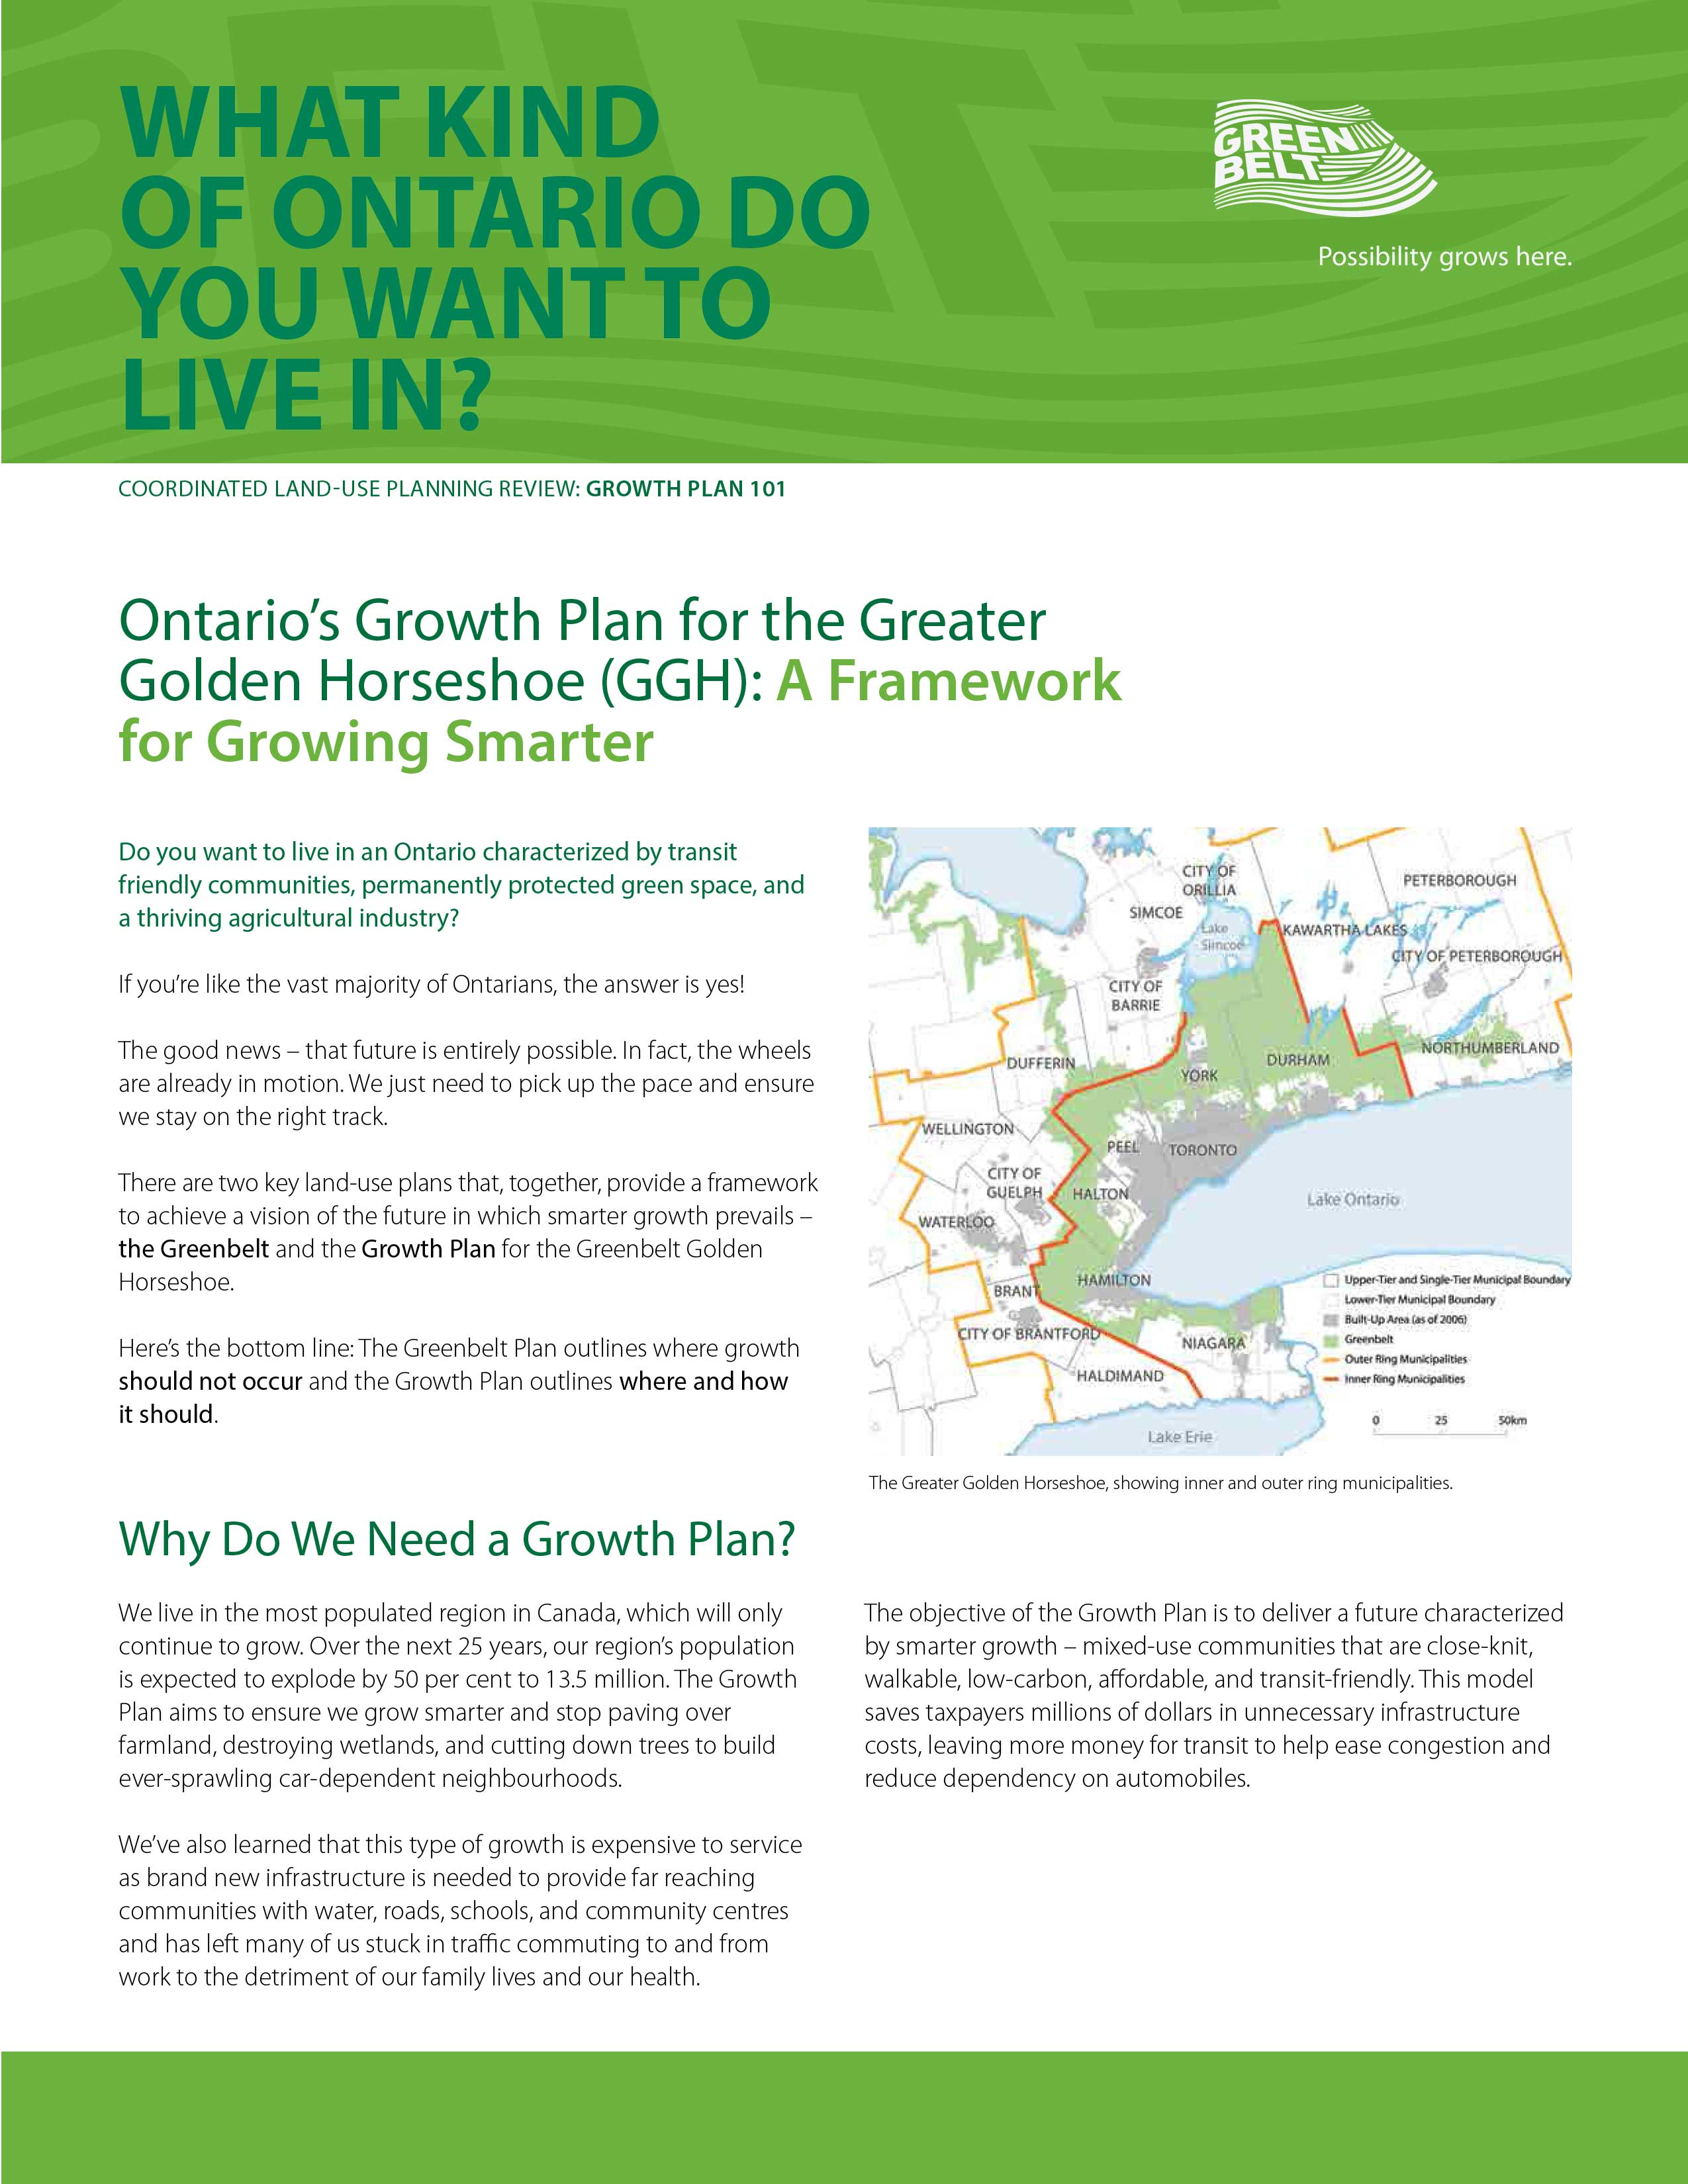 GrowthPlan_IssueNoteCover.jpg